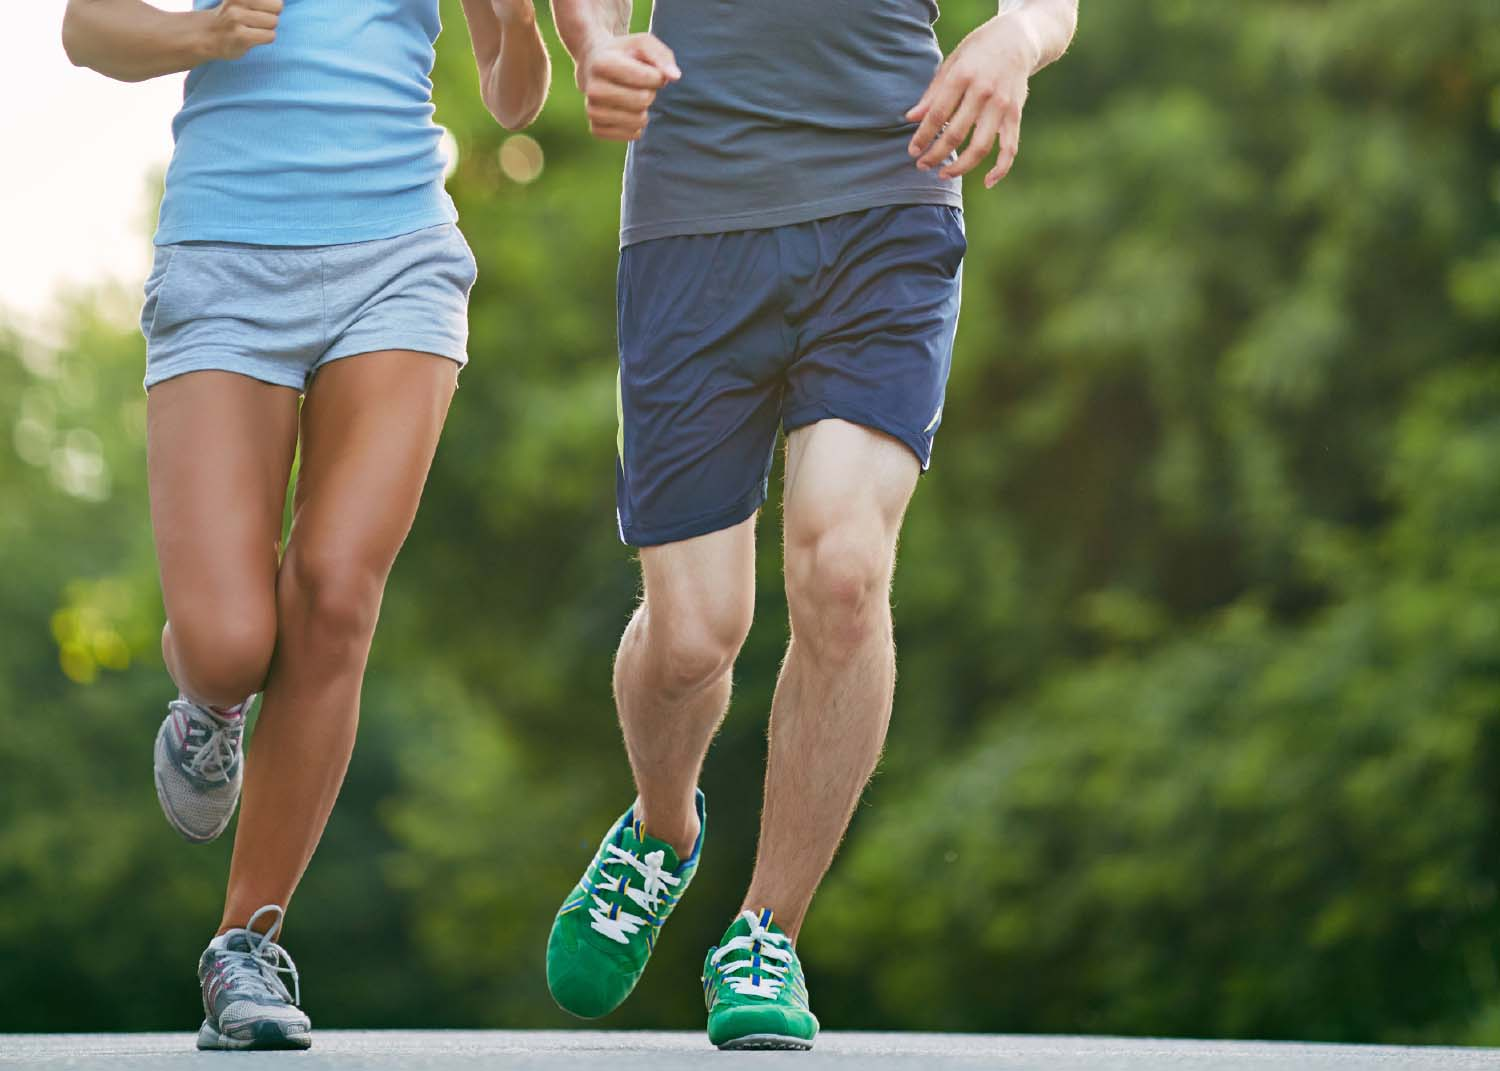 Envisagym Personal Training Gym Ranelagh Dublin From €139 Per Month Healthy Living Couple Jogging